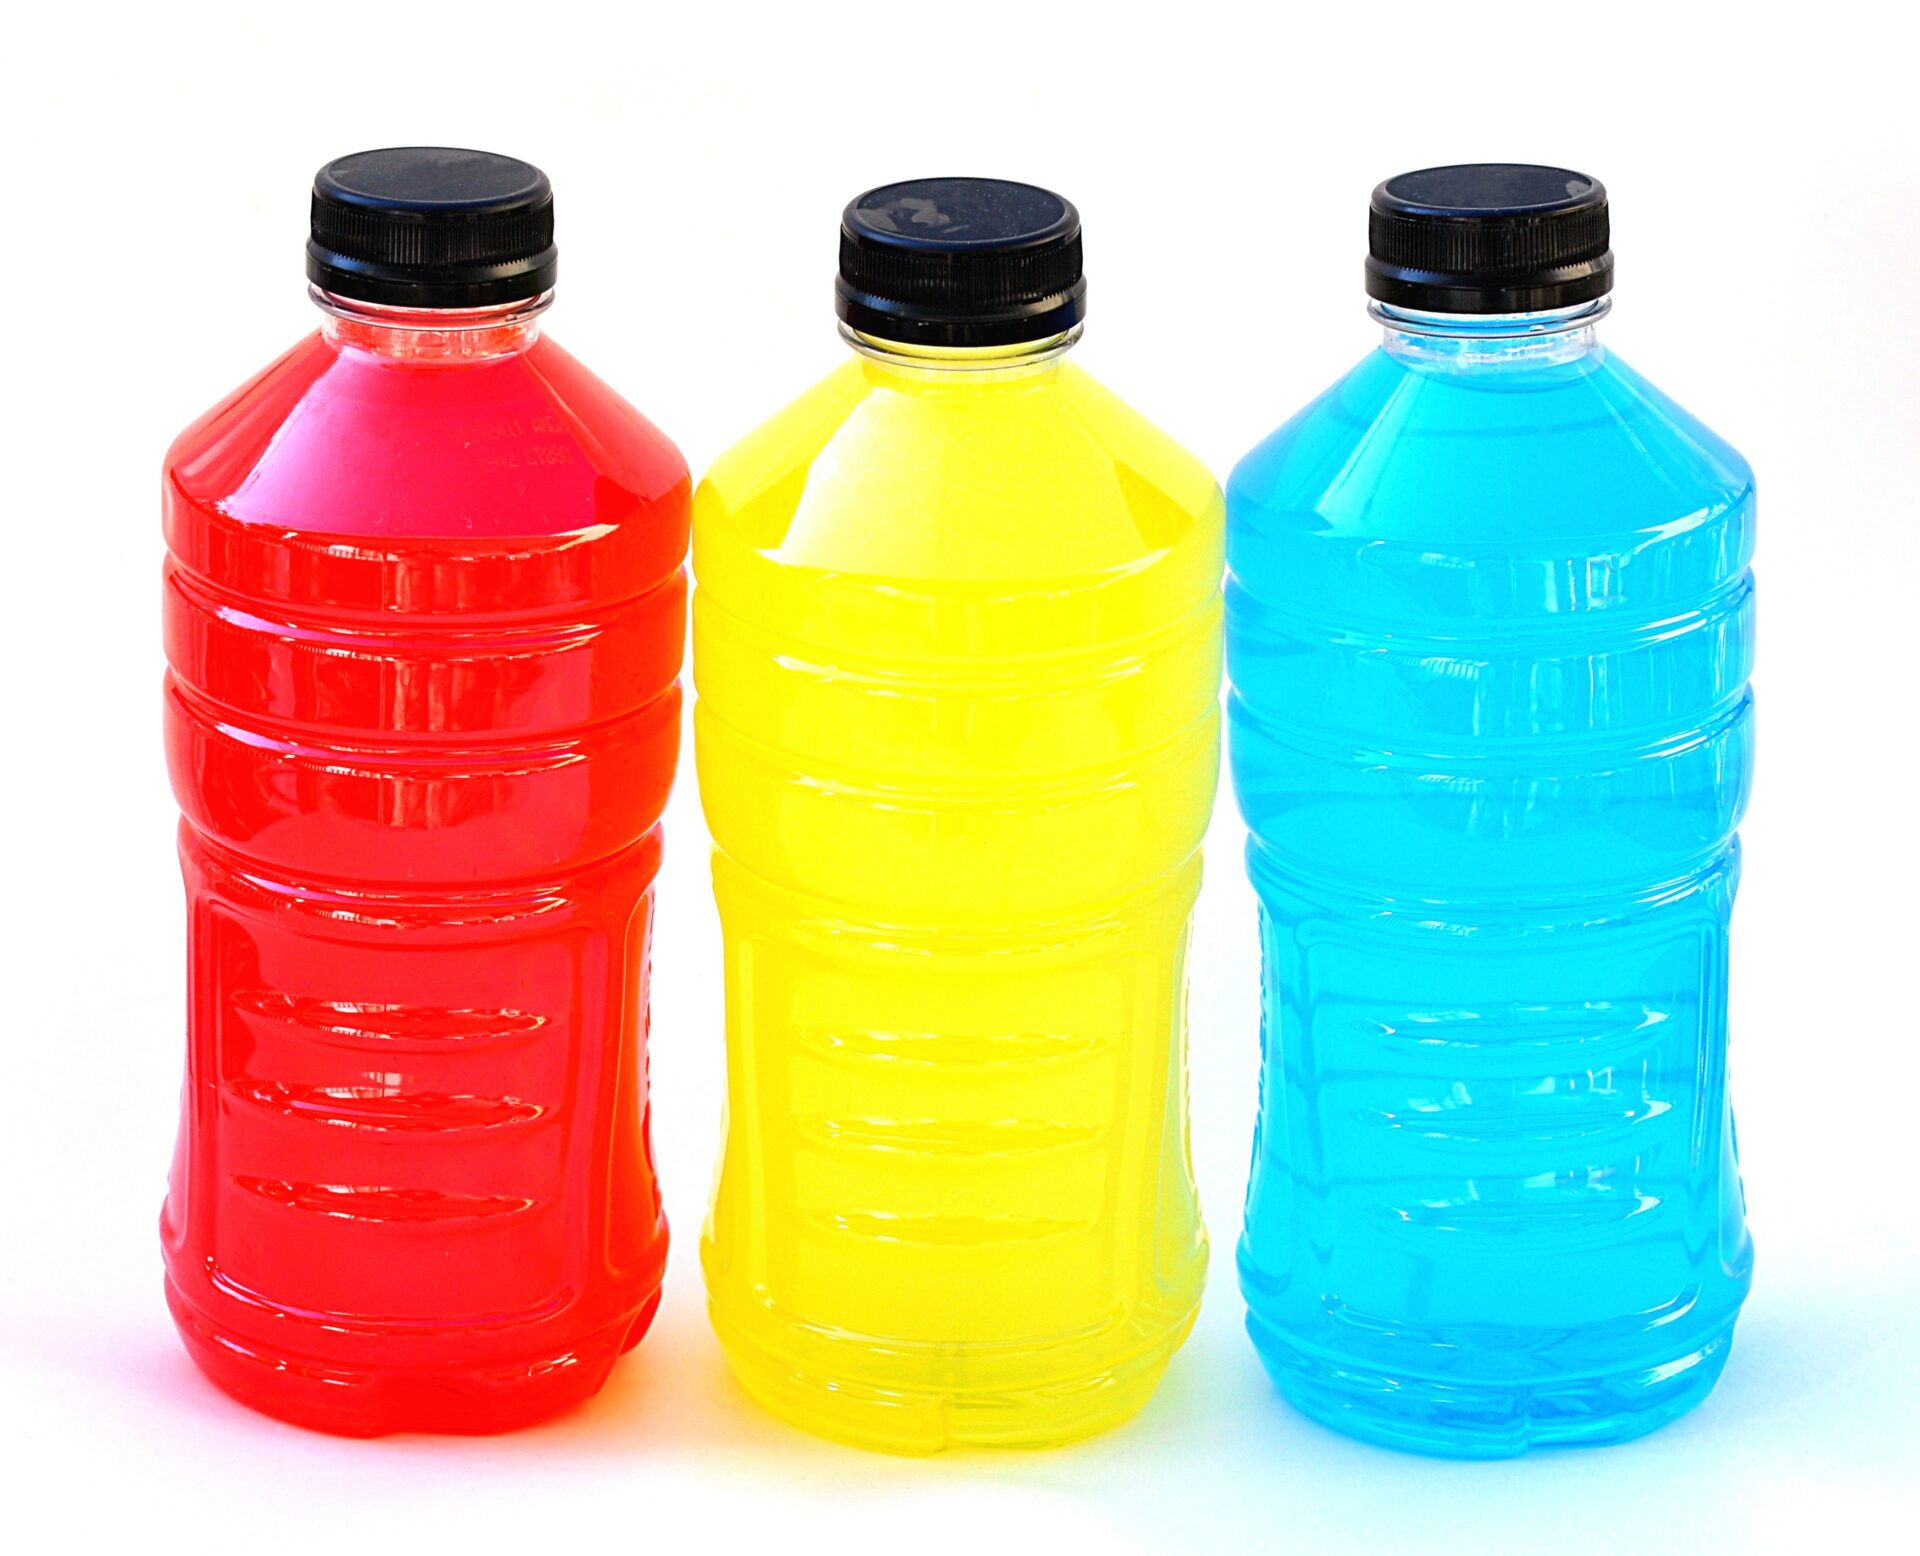 electrolyte replacement drinks in red, yellow & blue